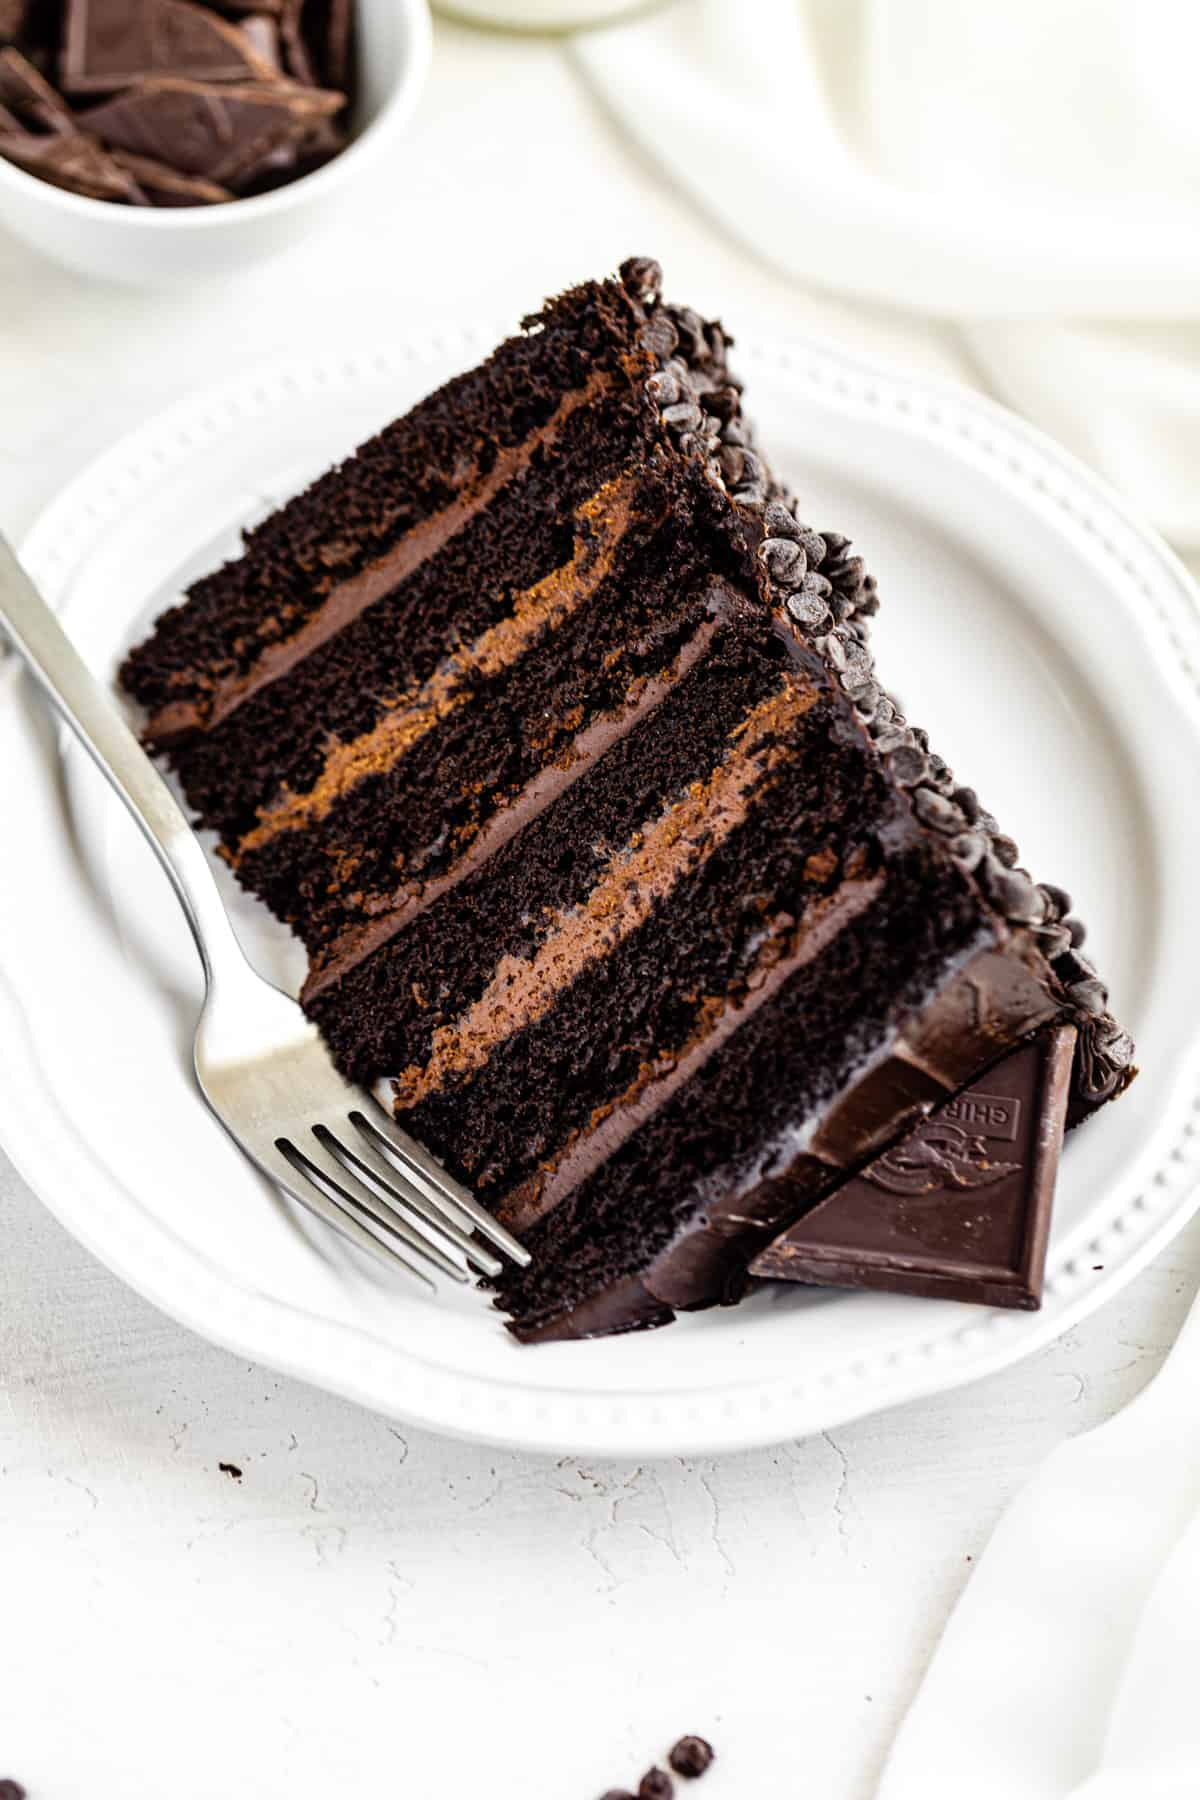 6-layer cake on a white plate with a fork next to it